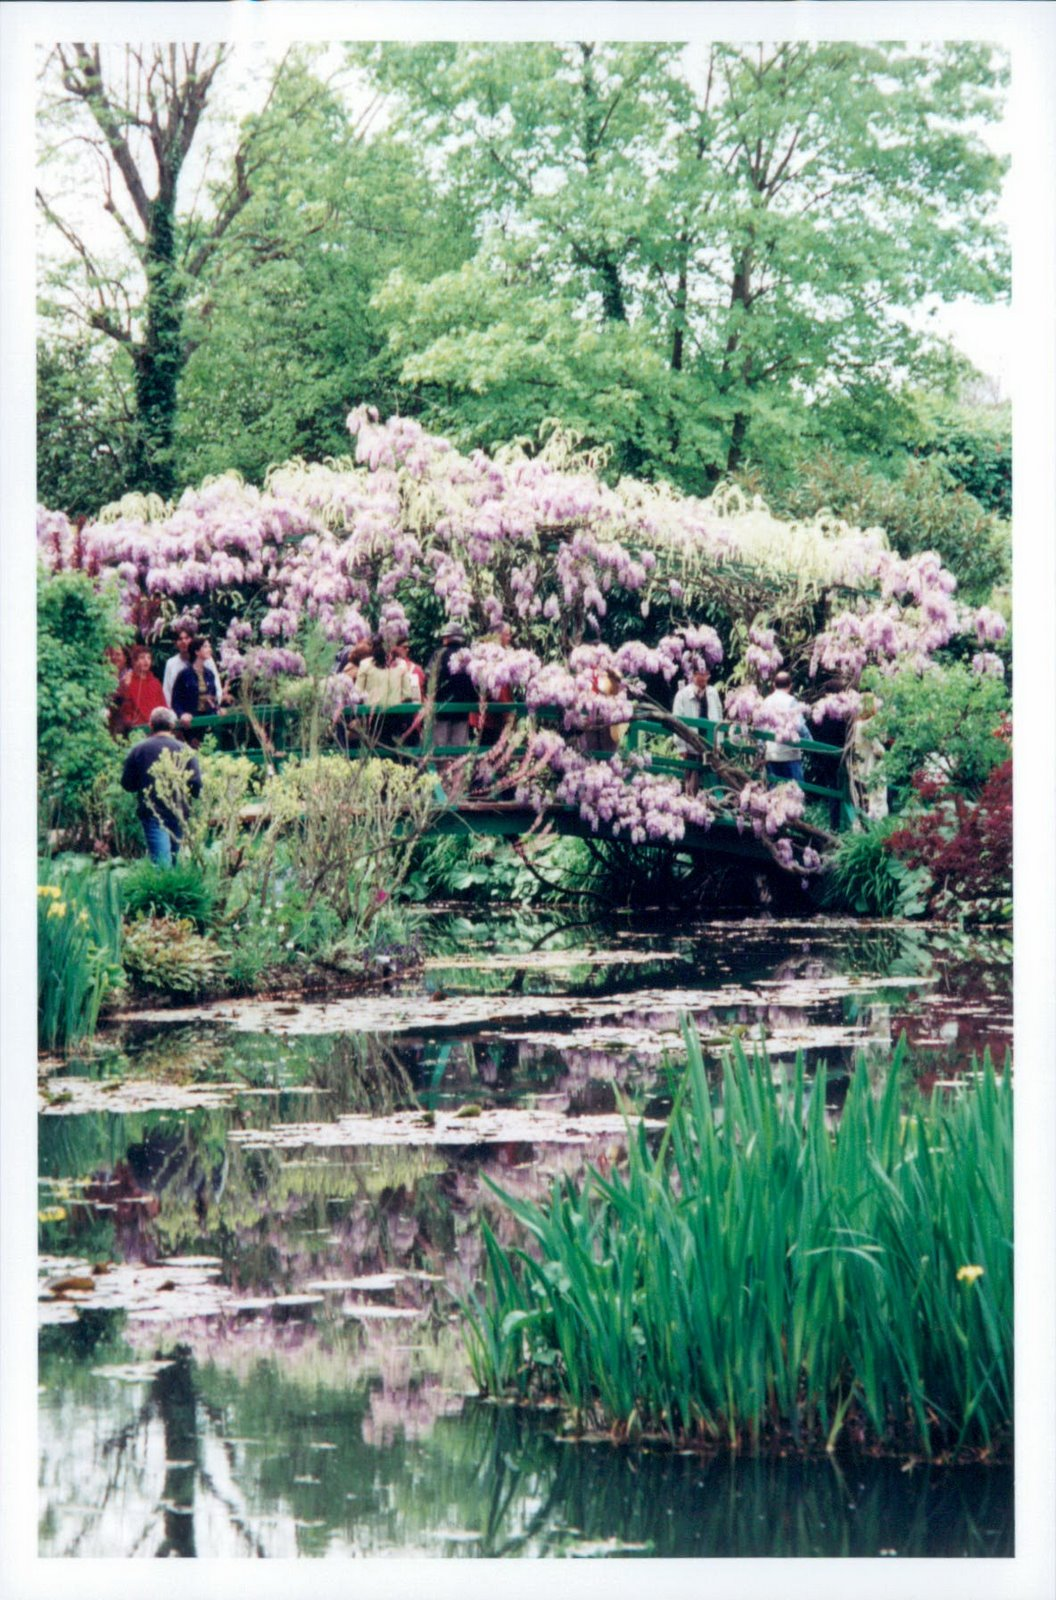 Cherry blossom trees and water lily pond at Monet's garden, Giverny France